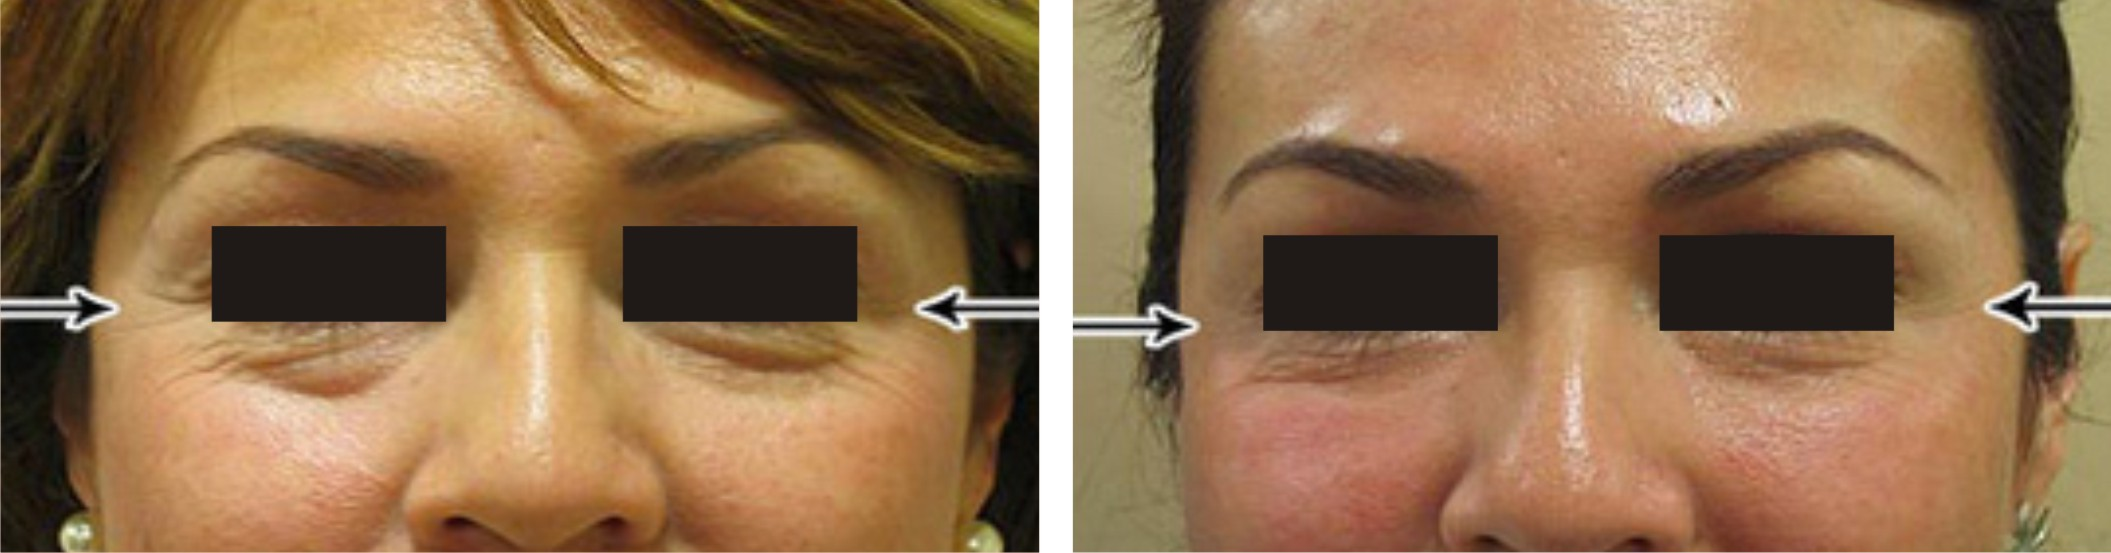 Mesotherapy Image Two